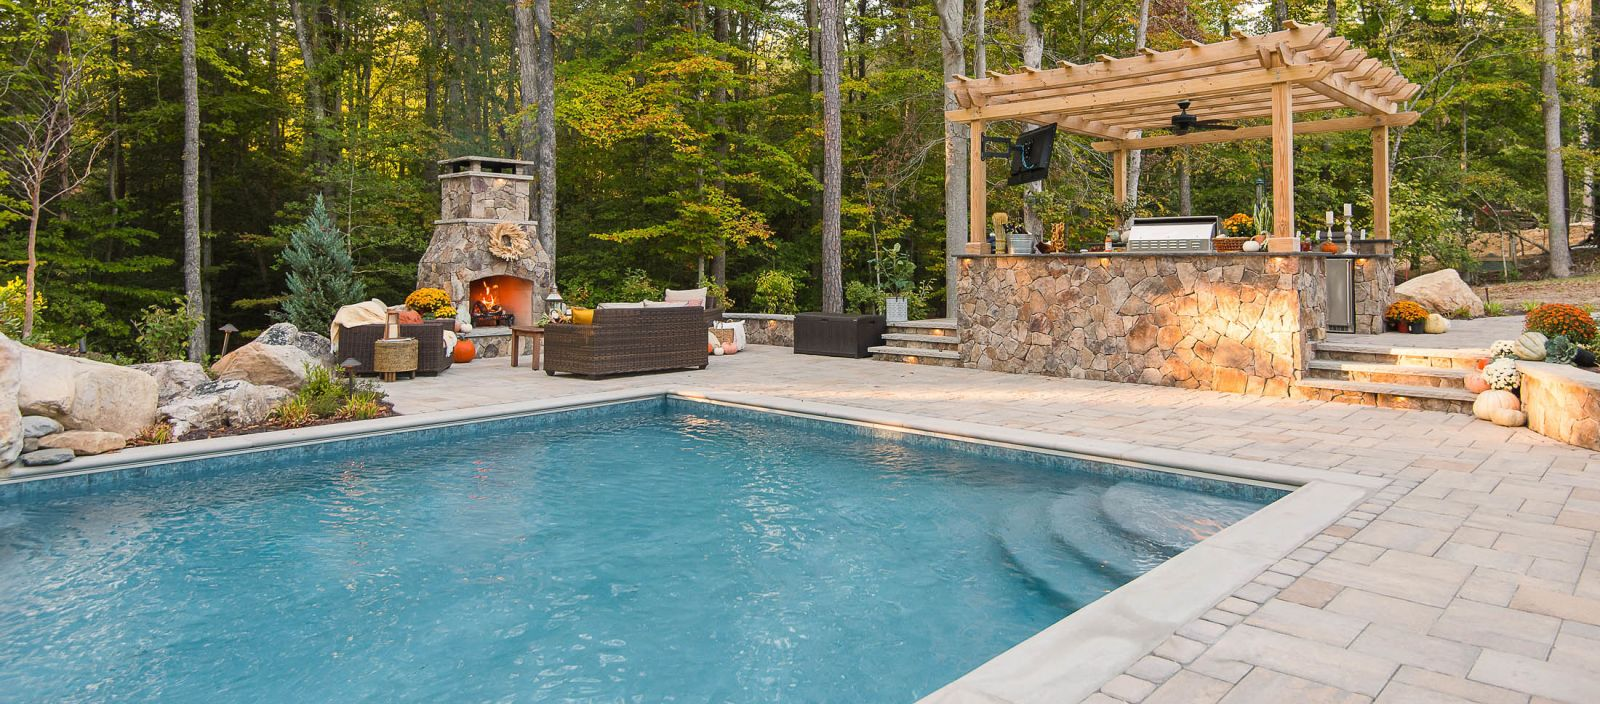 Backyard hardscape project with fireplace, pool and kitchen